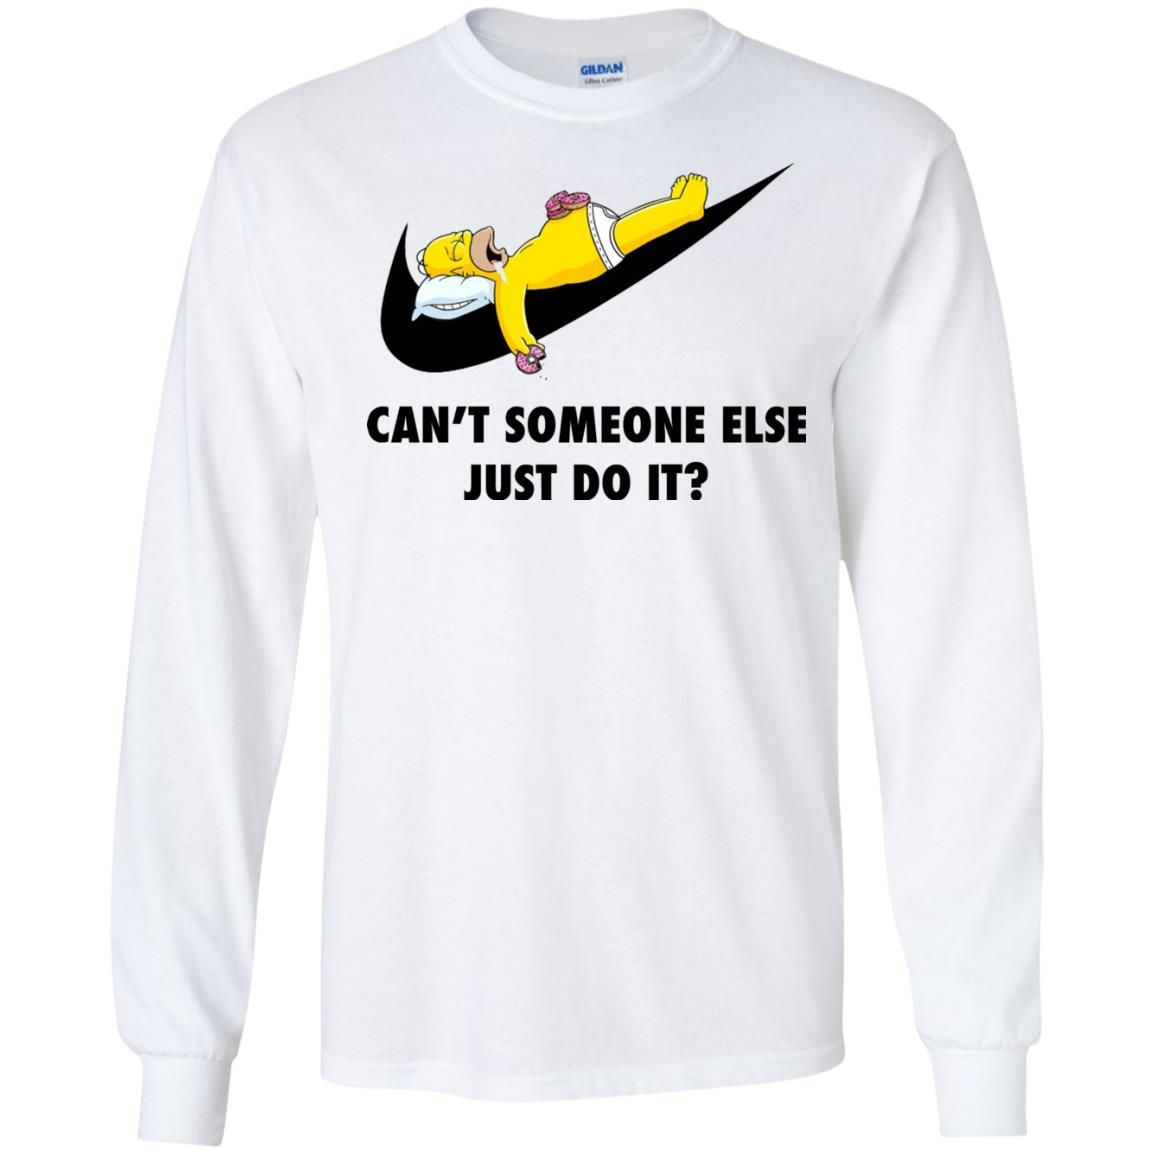 image 1405 - The Simpsons: Can't someone eles just do it shirt, tank, hoodie